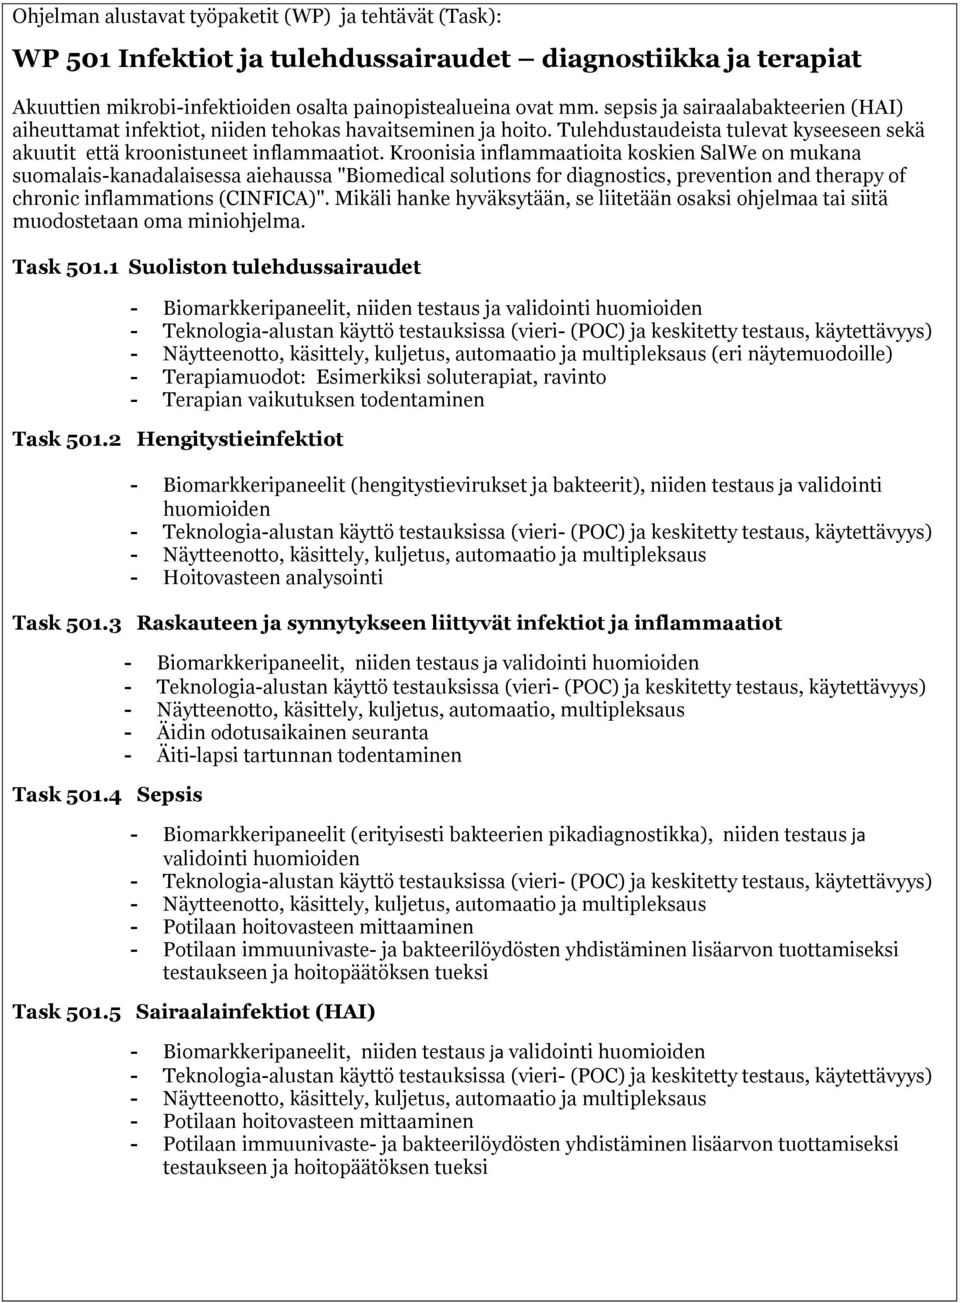 "Kroonisia inflammaatioita koskien SalWe on mukana suomalais-kanadalaisessa aiehaussa ""Biomedical solutions for diagnostics, prevention and therapy of chronic inflammations (CINFICA)""."